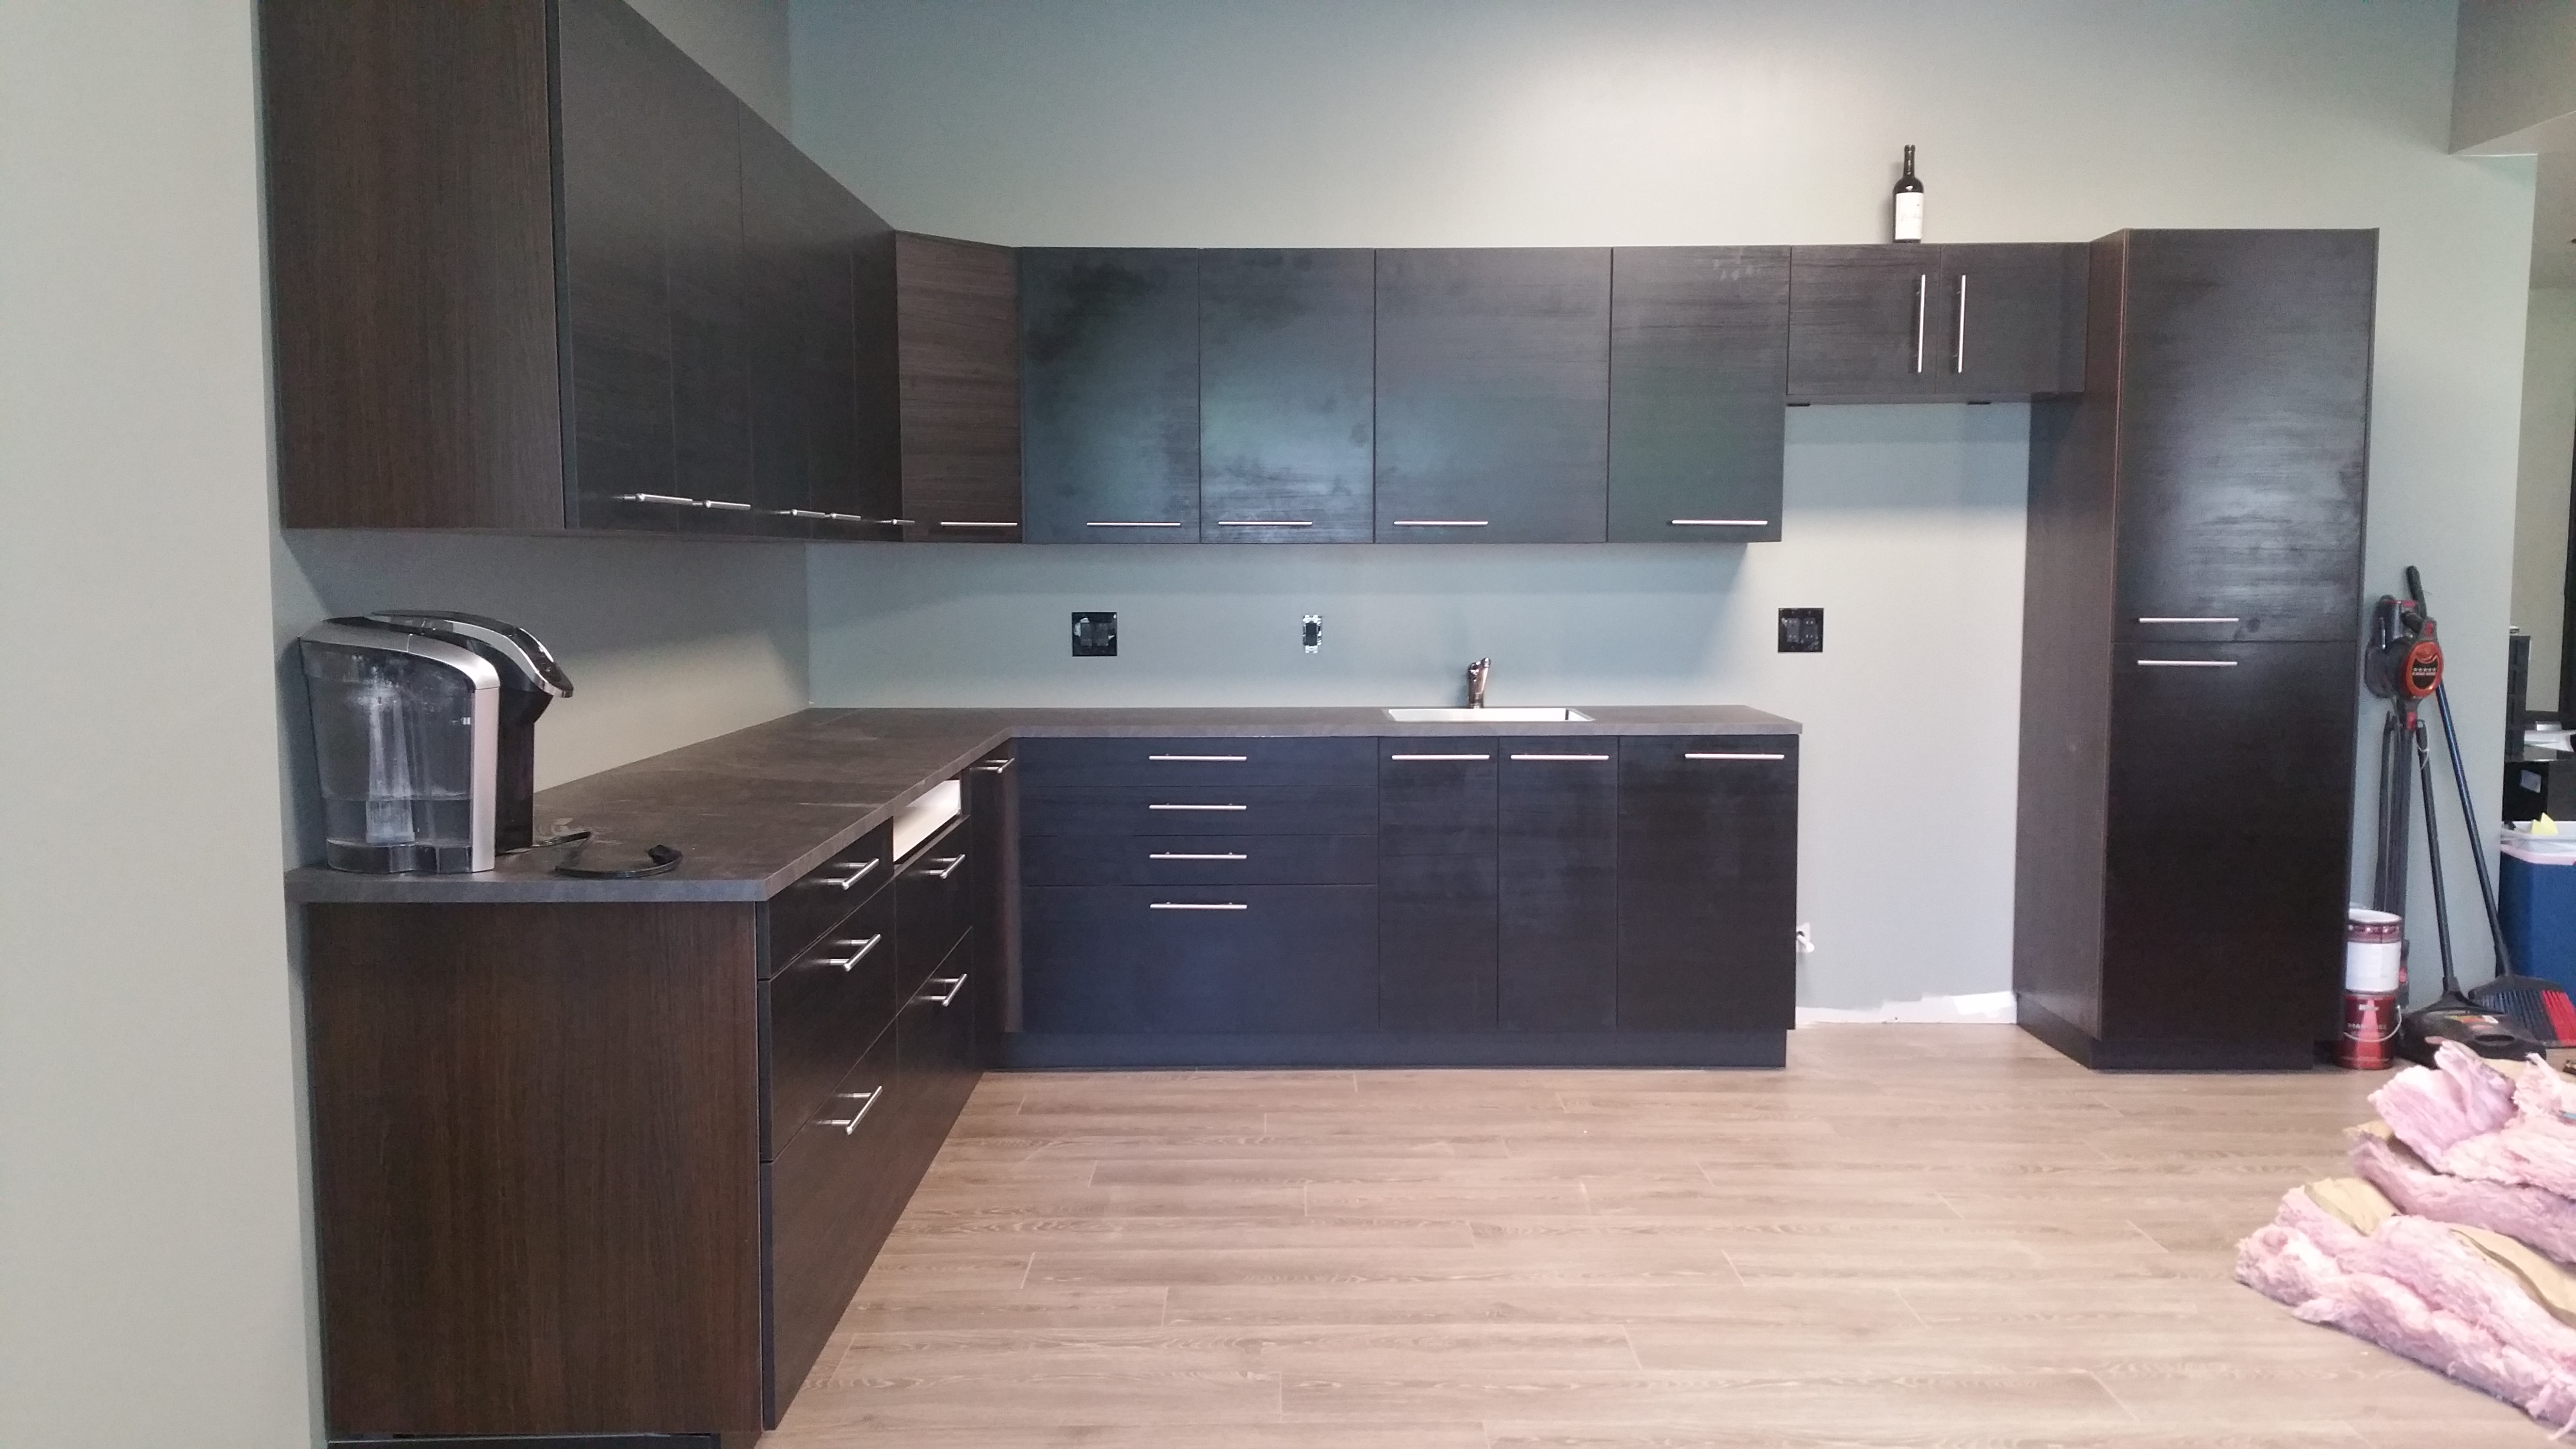 Any Assembly Installs Ikea Kitchens In Maryland Virginia